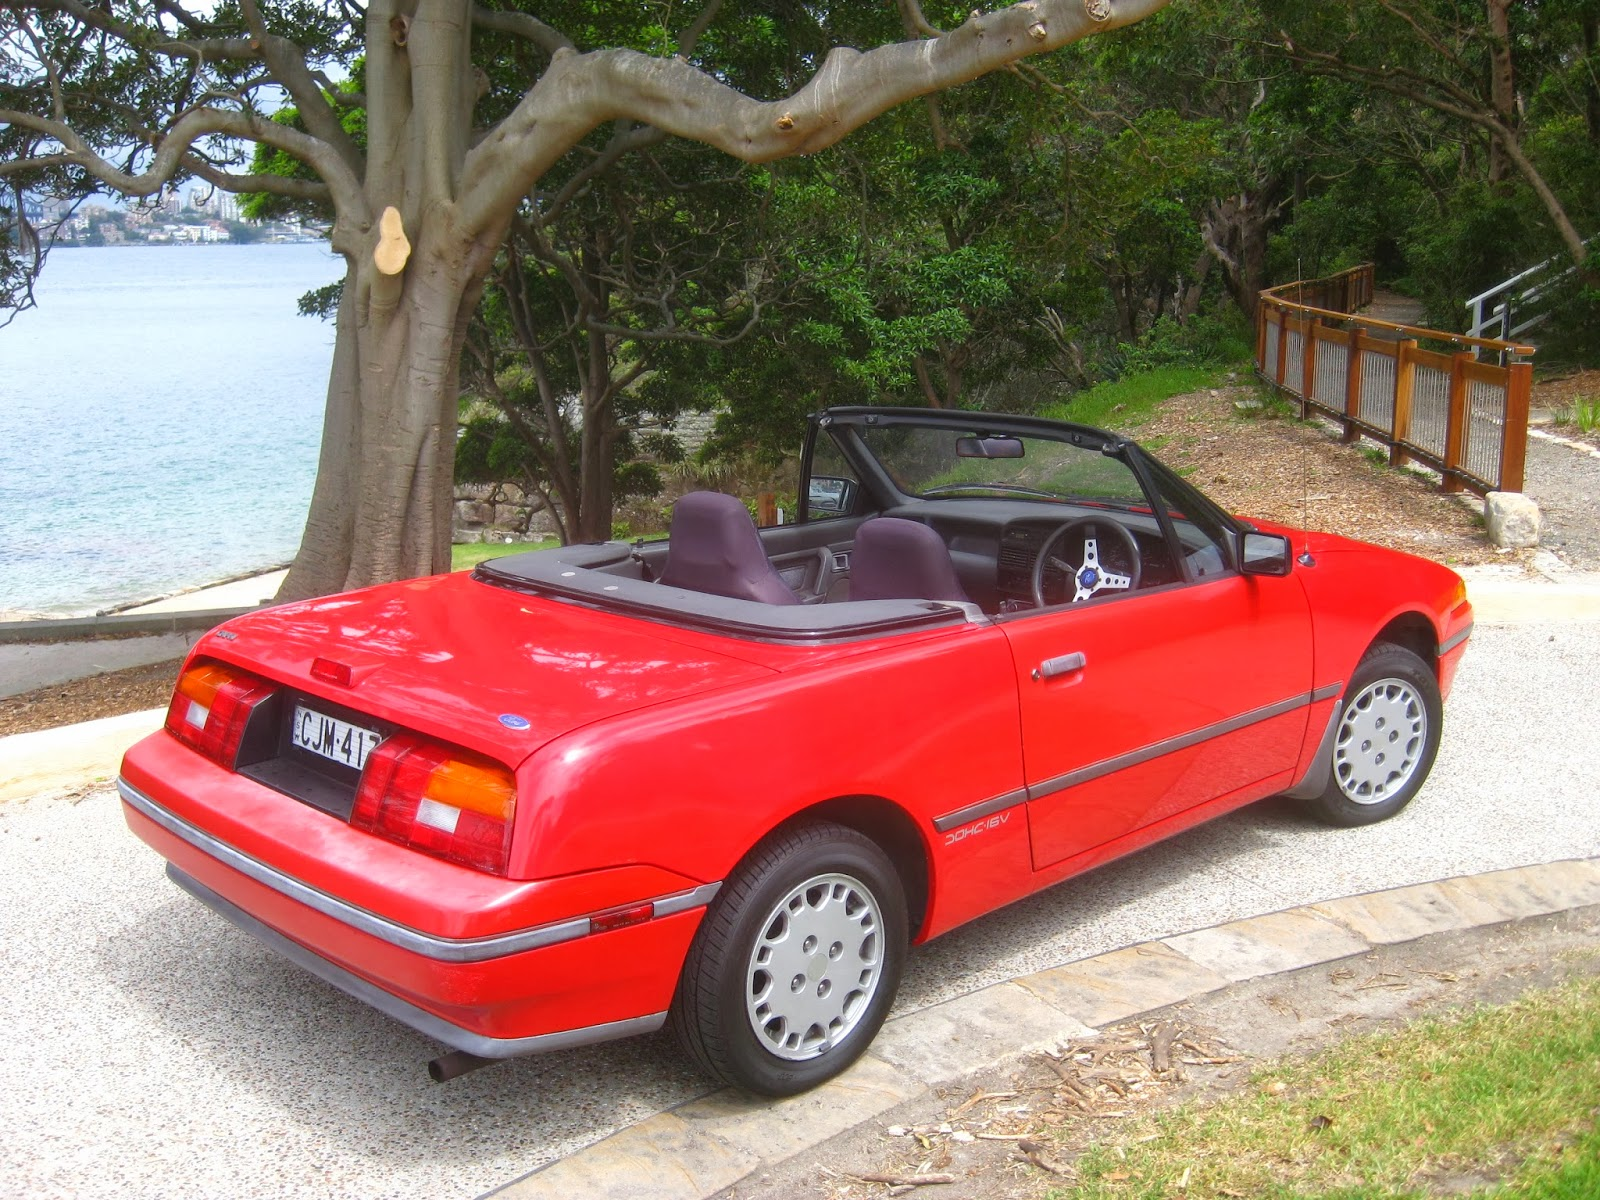 Extrêmement Aussie Old Parked Cars: 1990 Ford Capri SA II Convertible JU77